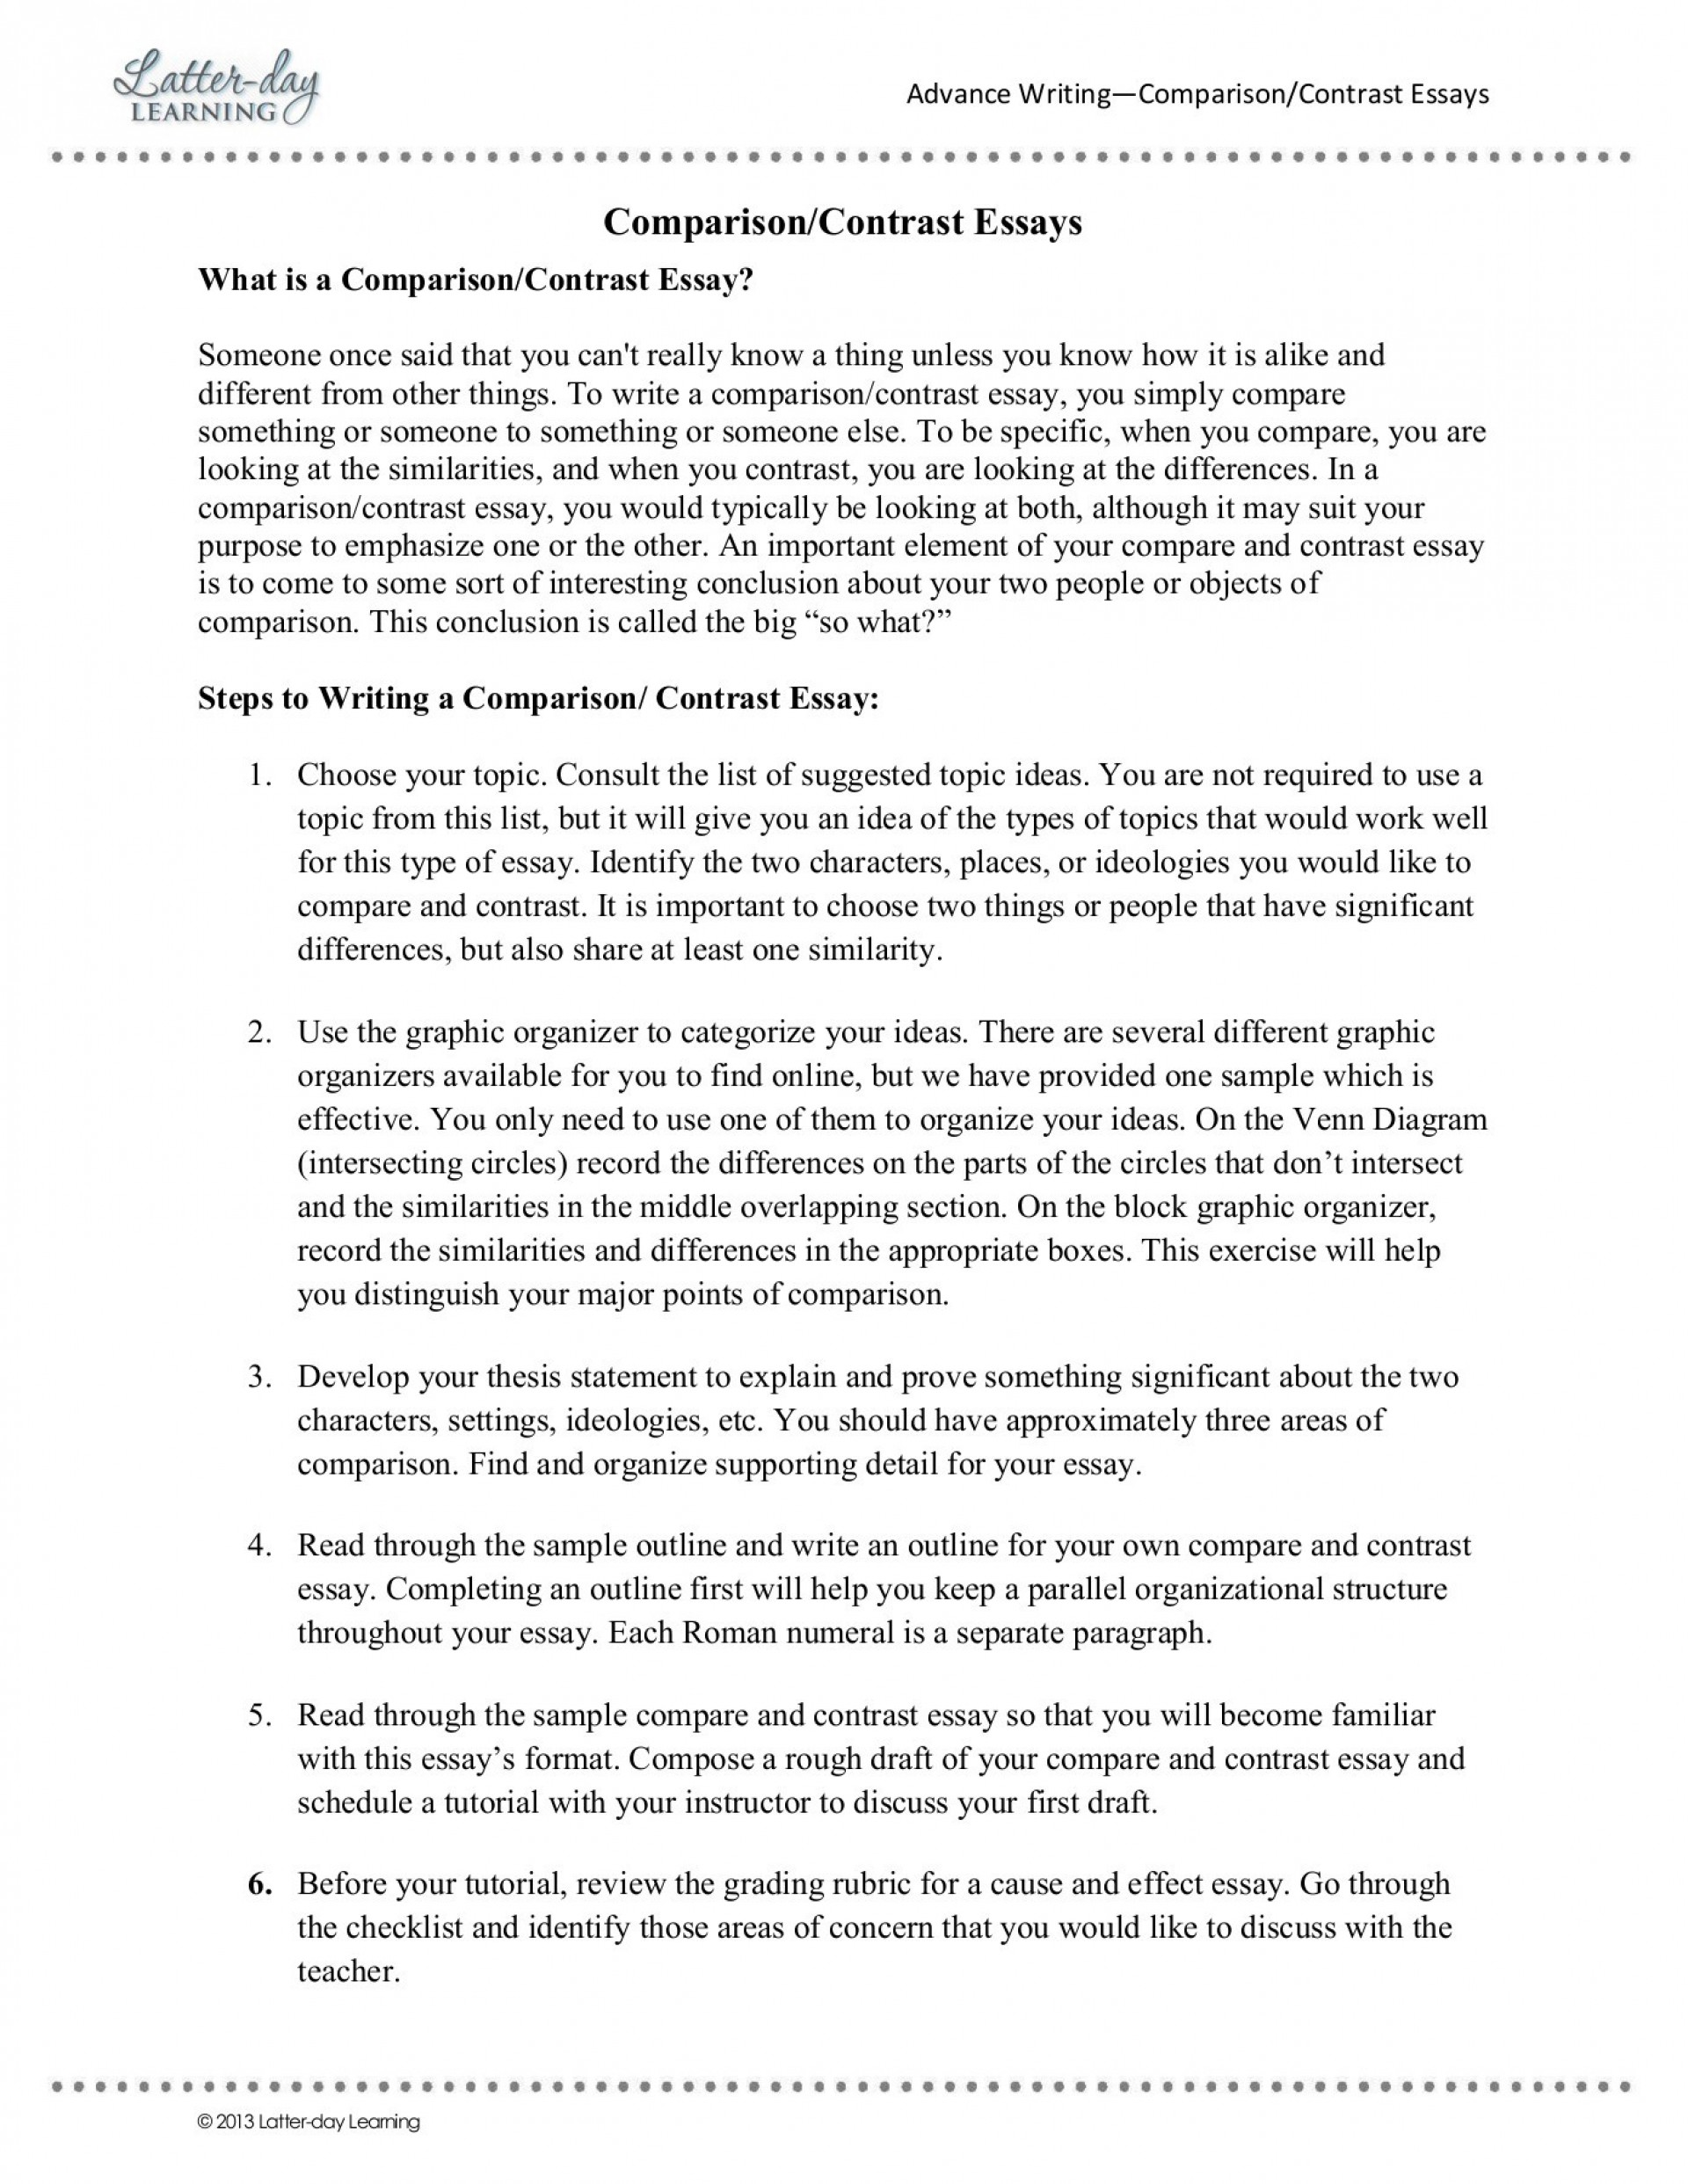 022 Essay Example How To Outline Compare And Awesome A Contrast Create An For 1920